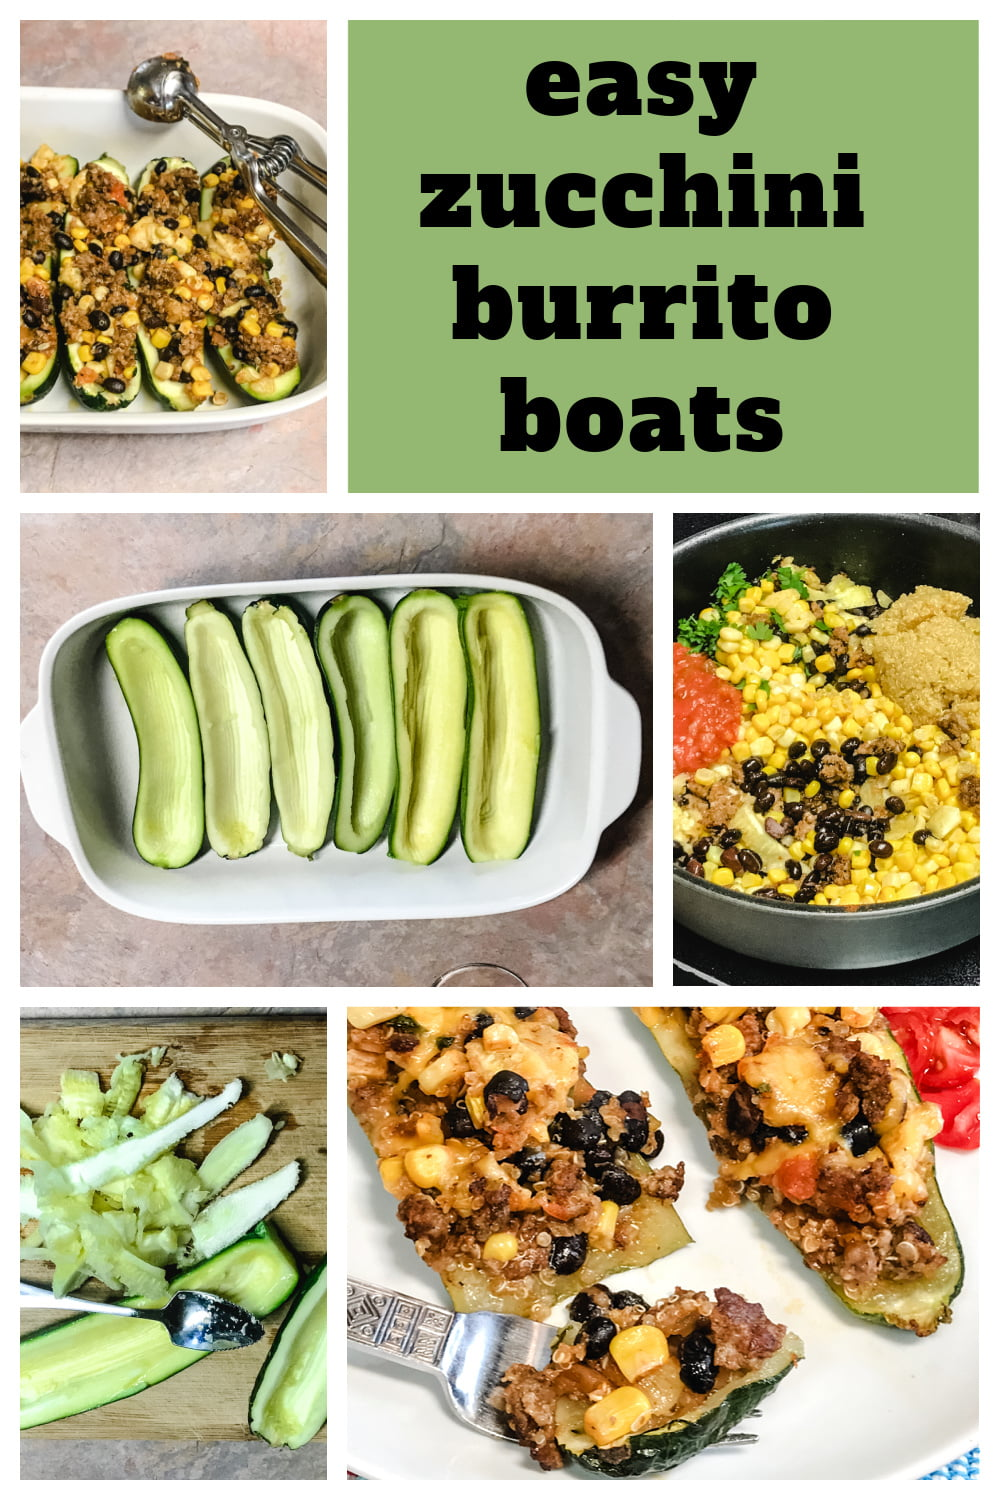 The steps for making mexican zucchini boats.